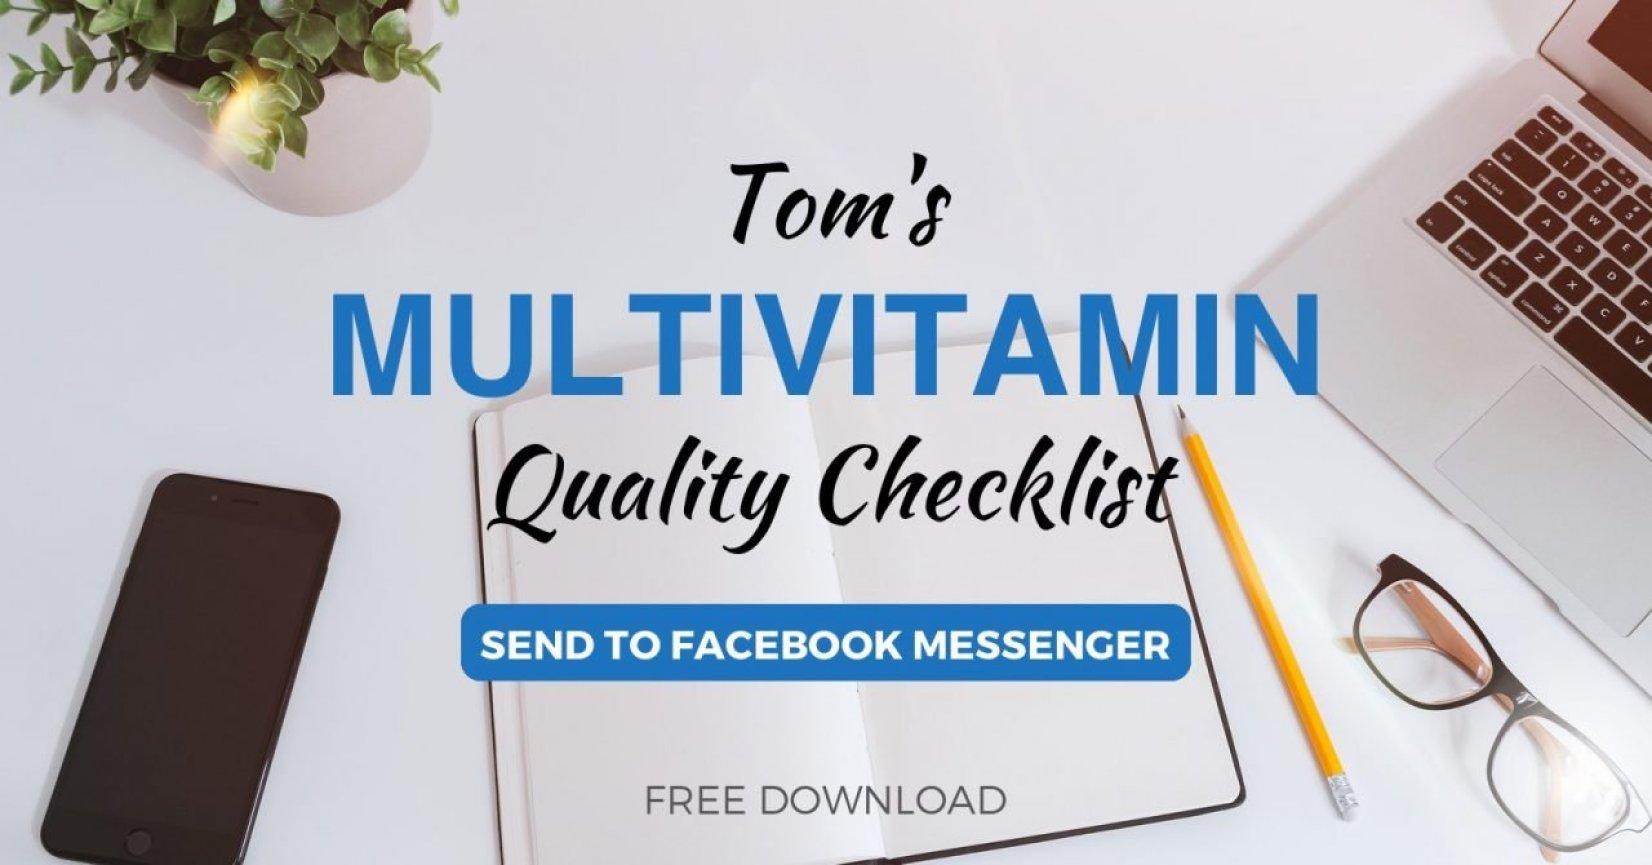 Multivitamin Checklist | Tom Nikkola